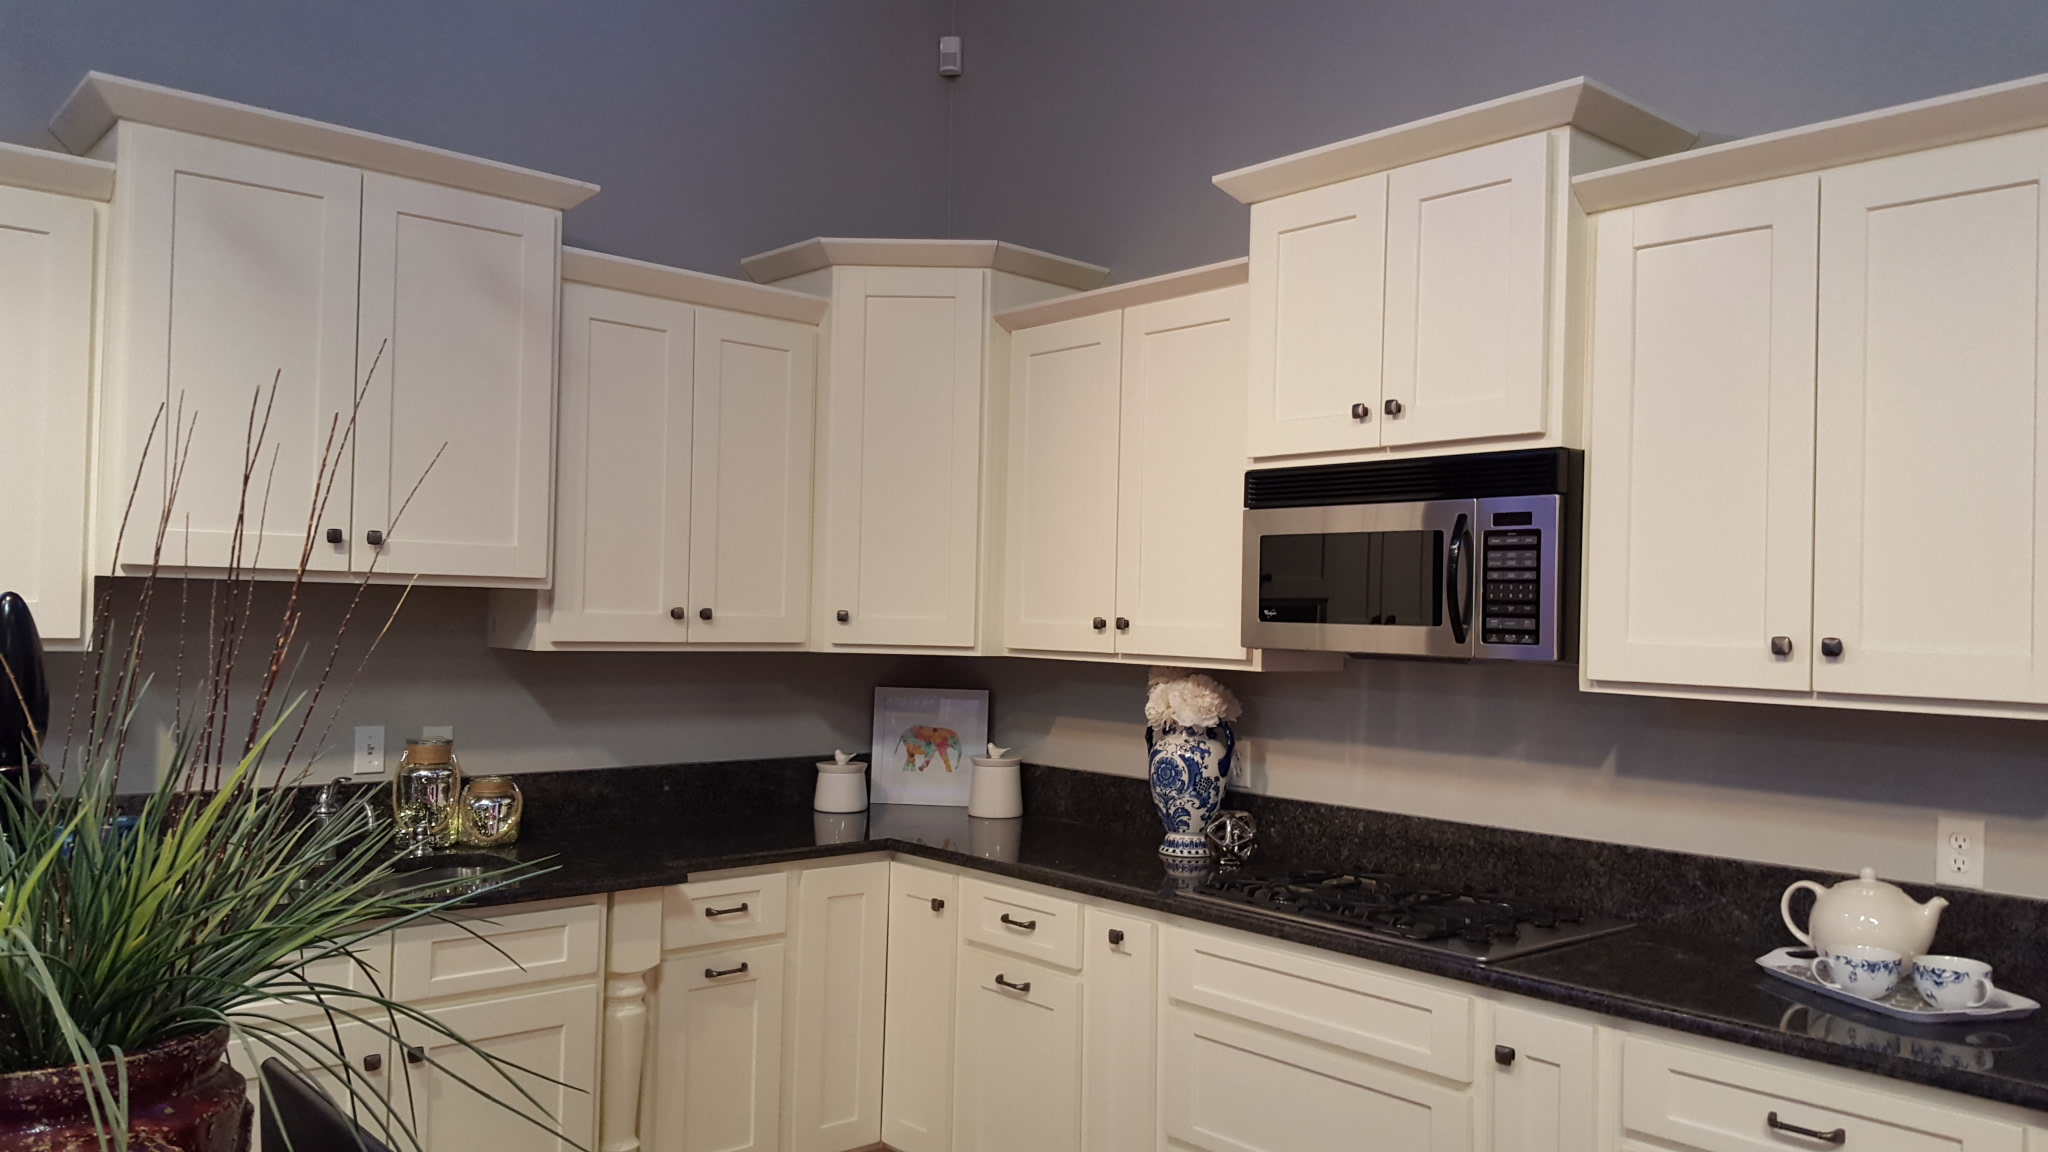 Kitchen Cabinets Knotty Alder rta kitchen cabinets ready-to-assemble | knotty alder cabinets